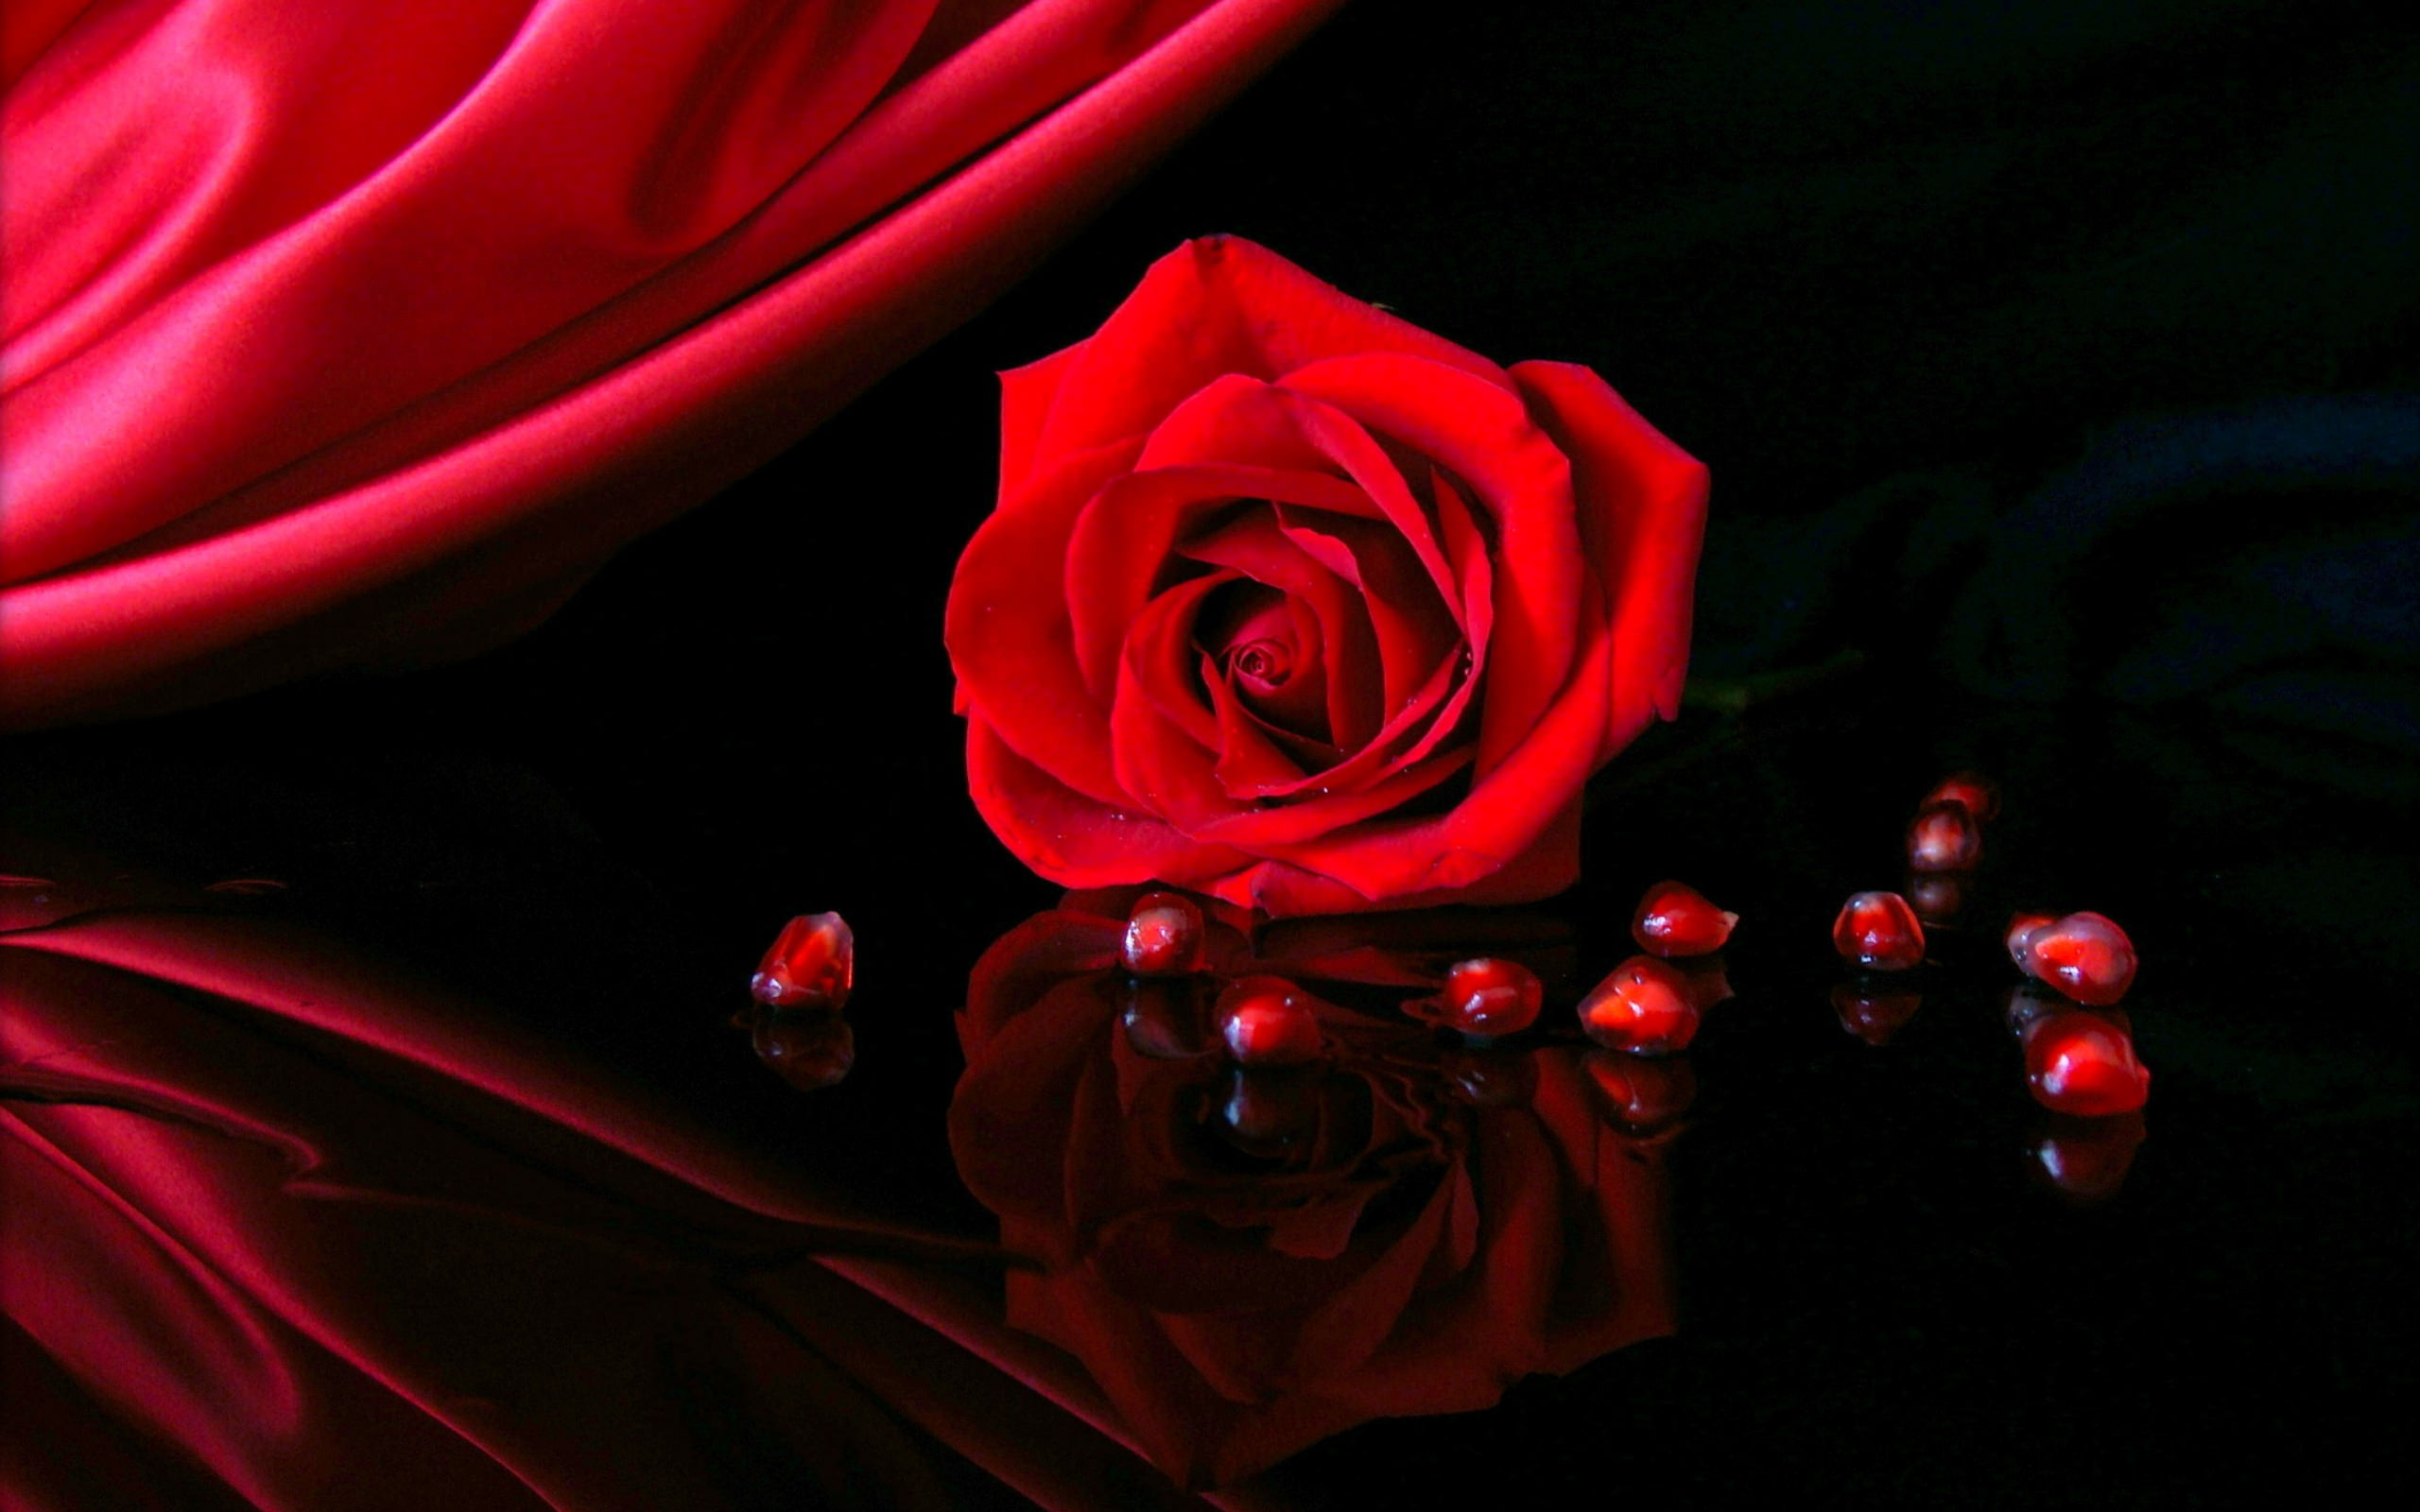 25 Roses Background Wallpapers Images Pictures 2560x1600